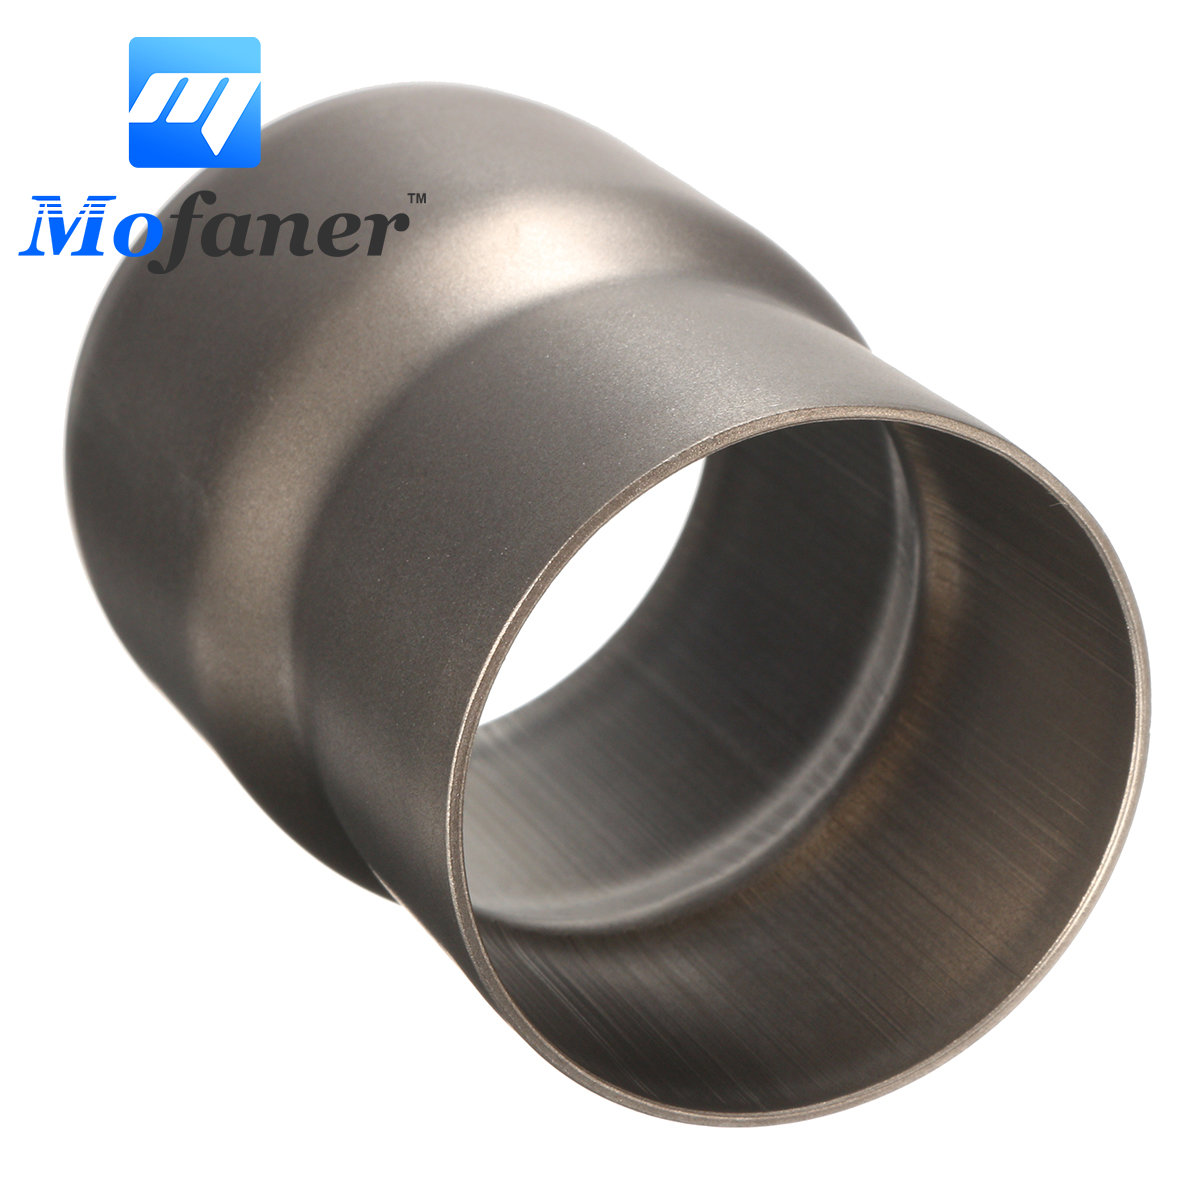 Mofaner 60mm to 51mm Motorcycle Exhaust Adapter Mild Steel Convertor Adapter Reducer Connector Pipe Tube